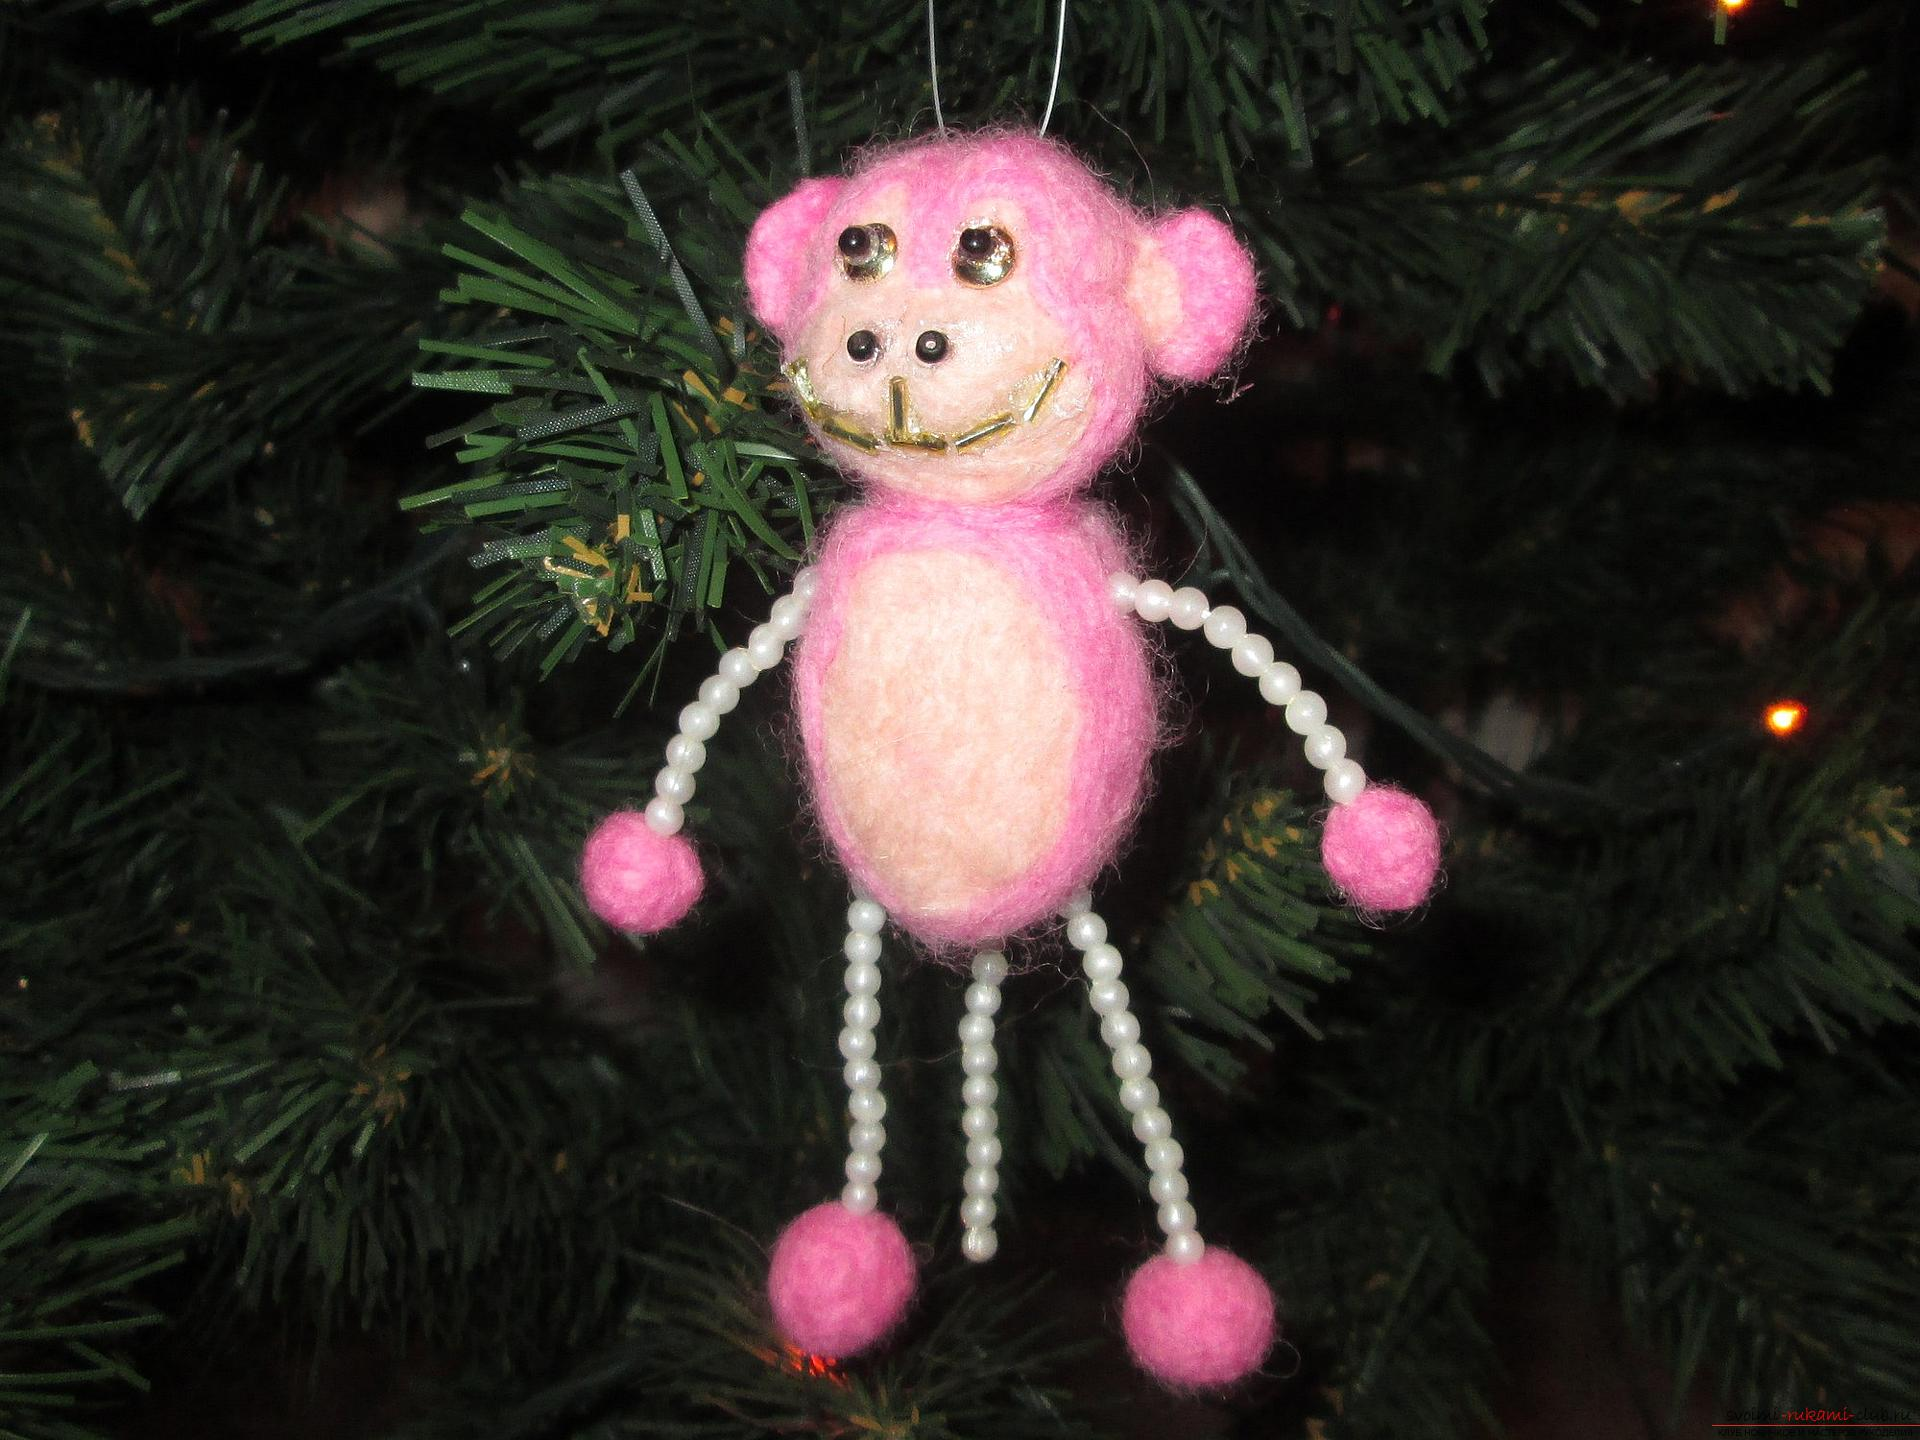 This master class felting out of wool will help make a toy monkey with your own hands. Photo №1